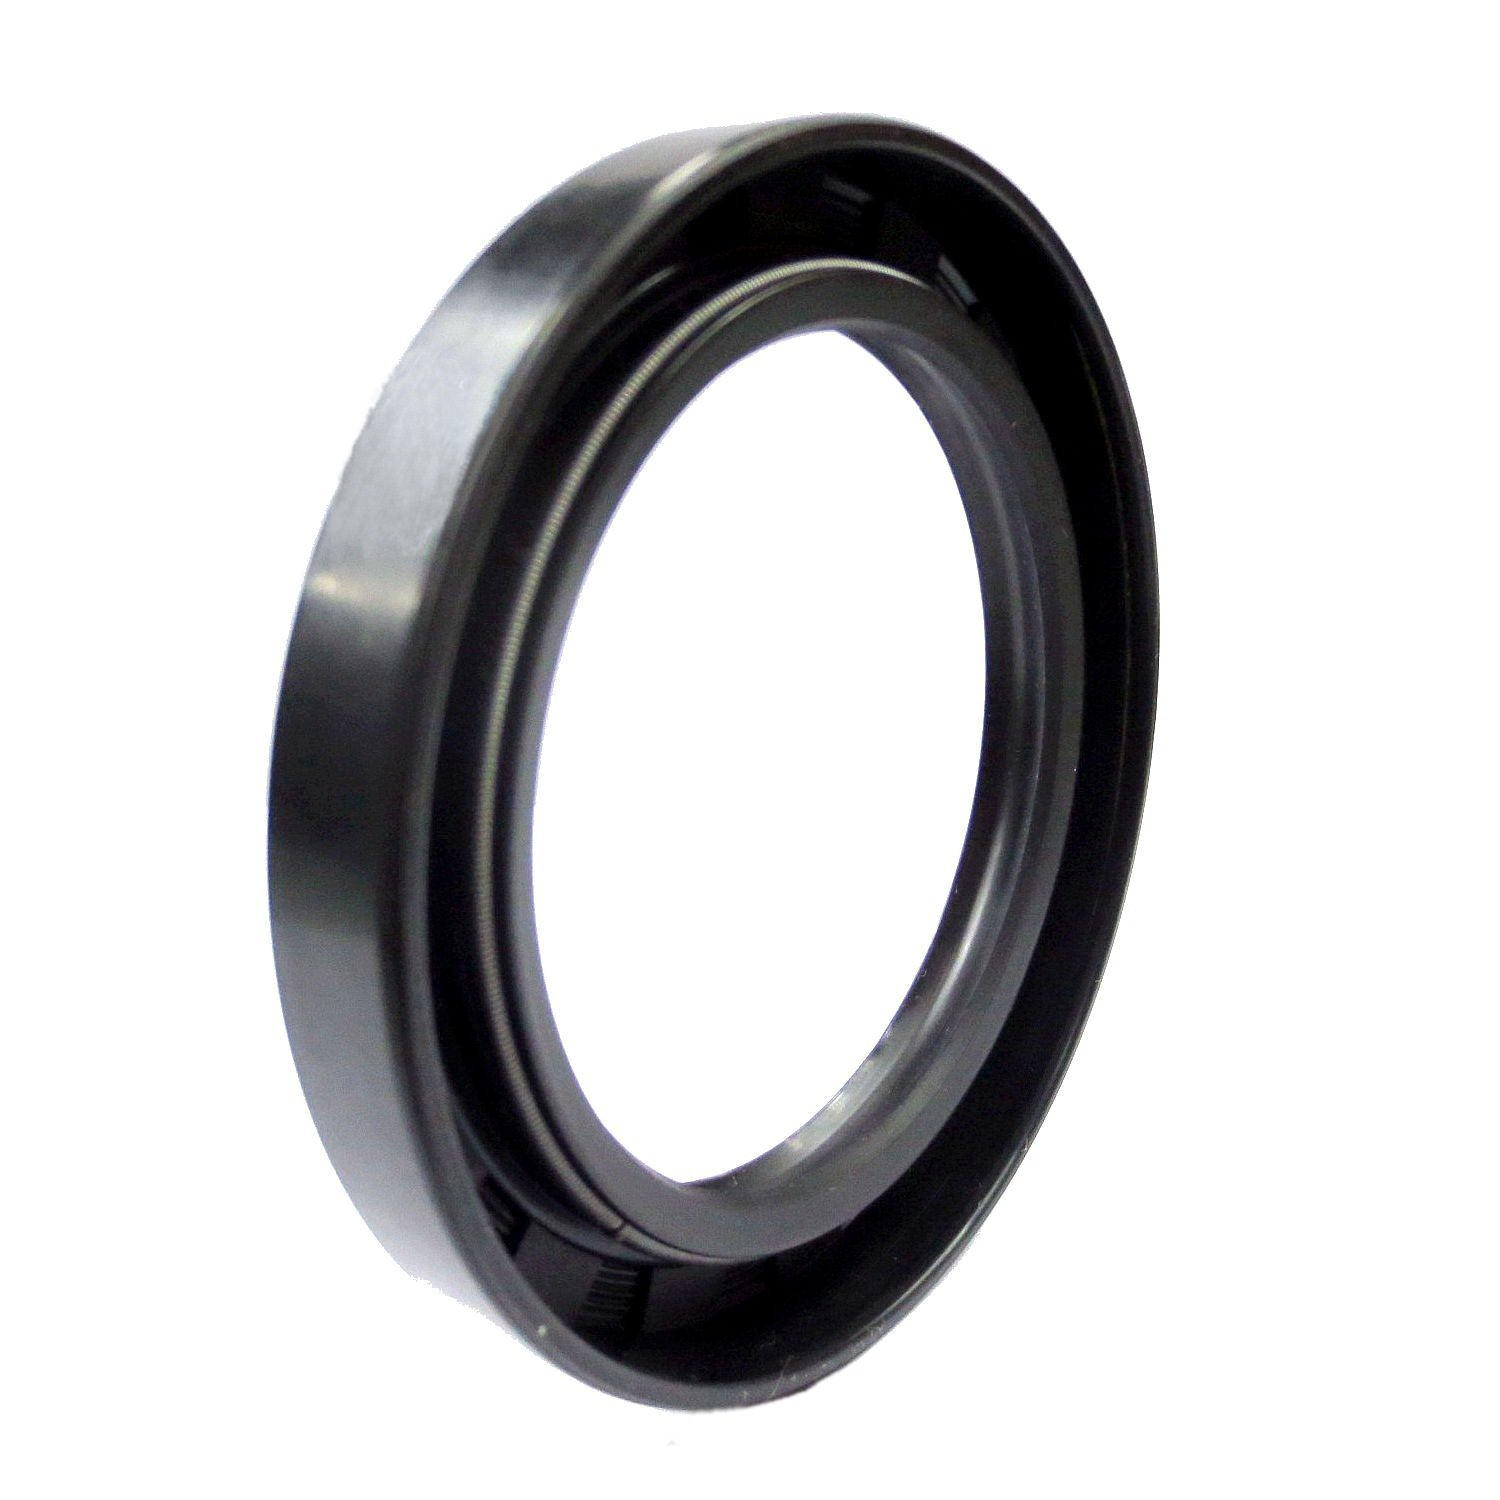 Motorcycles Agriculture Mining Transport Great Wear Resistance And Sealing Effect for General Machinery Pumps WSI 30x42x7mm R23//TC Double Lip Nitrile Rotary Shaft Oil Seal with Garter Spring